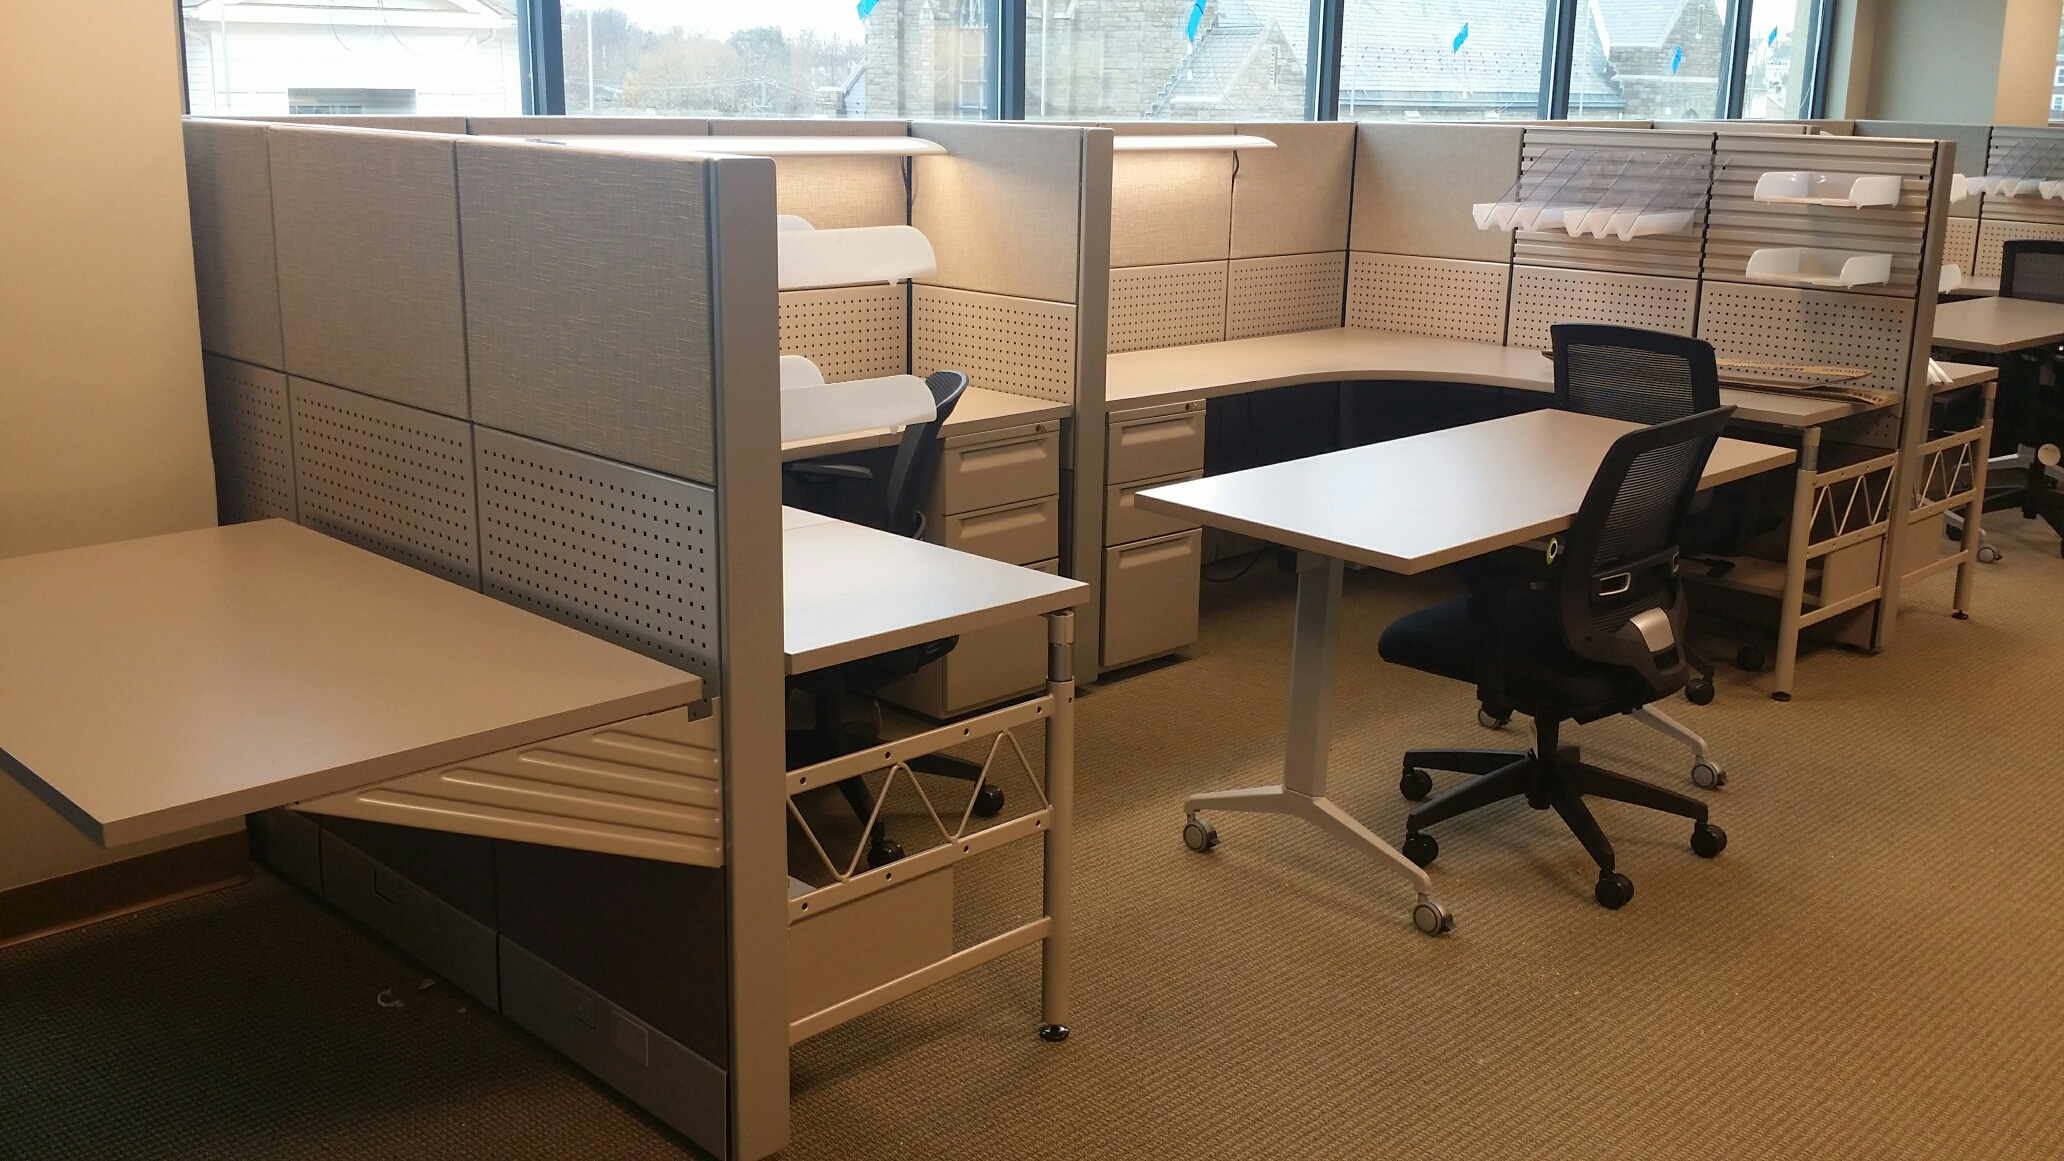 Office Furniture: Blend Of New And Used Office Furniture Creates Beautiful